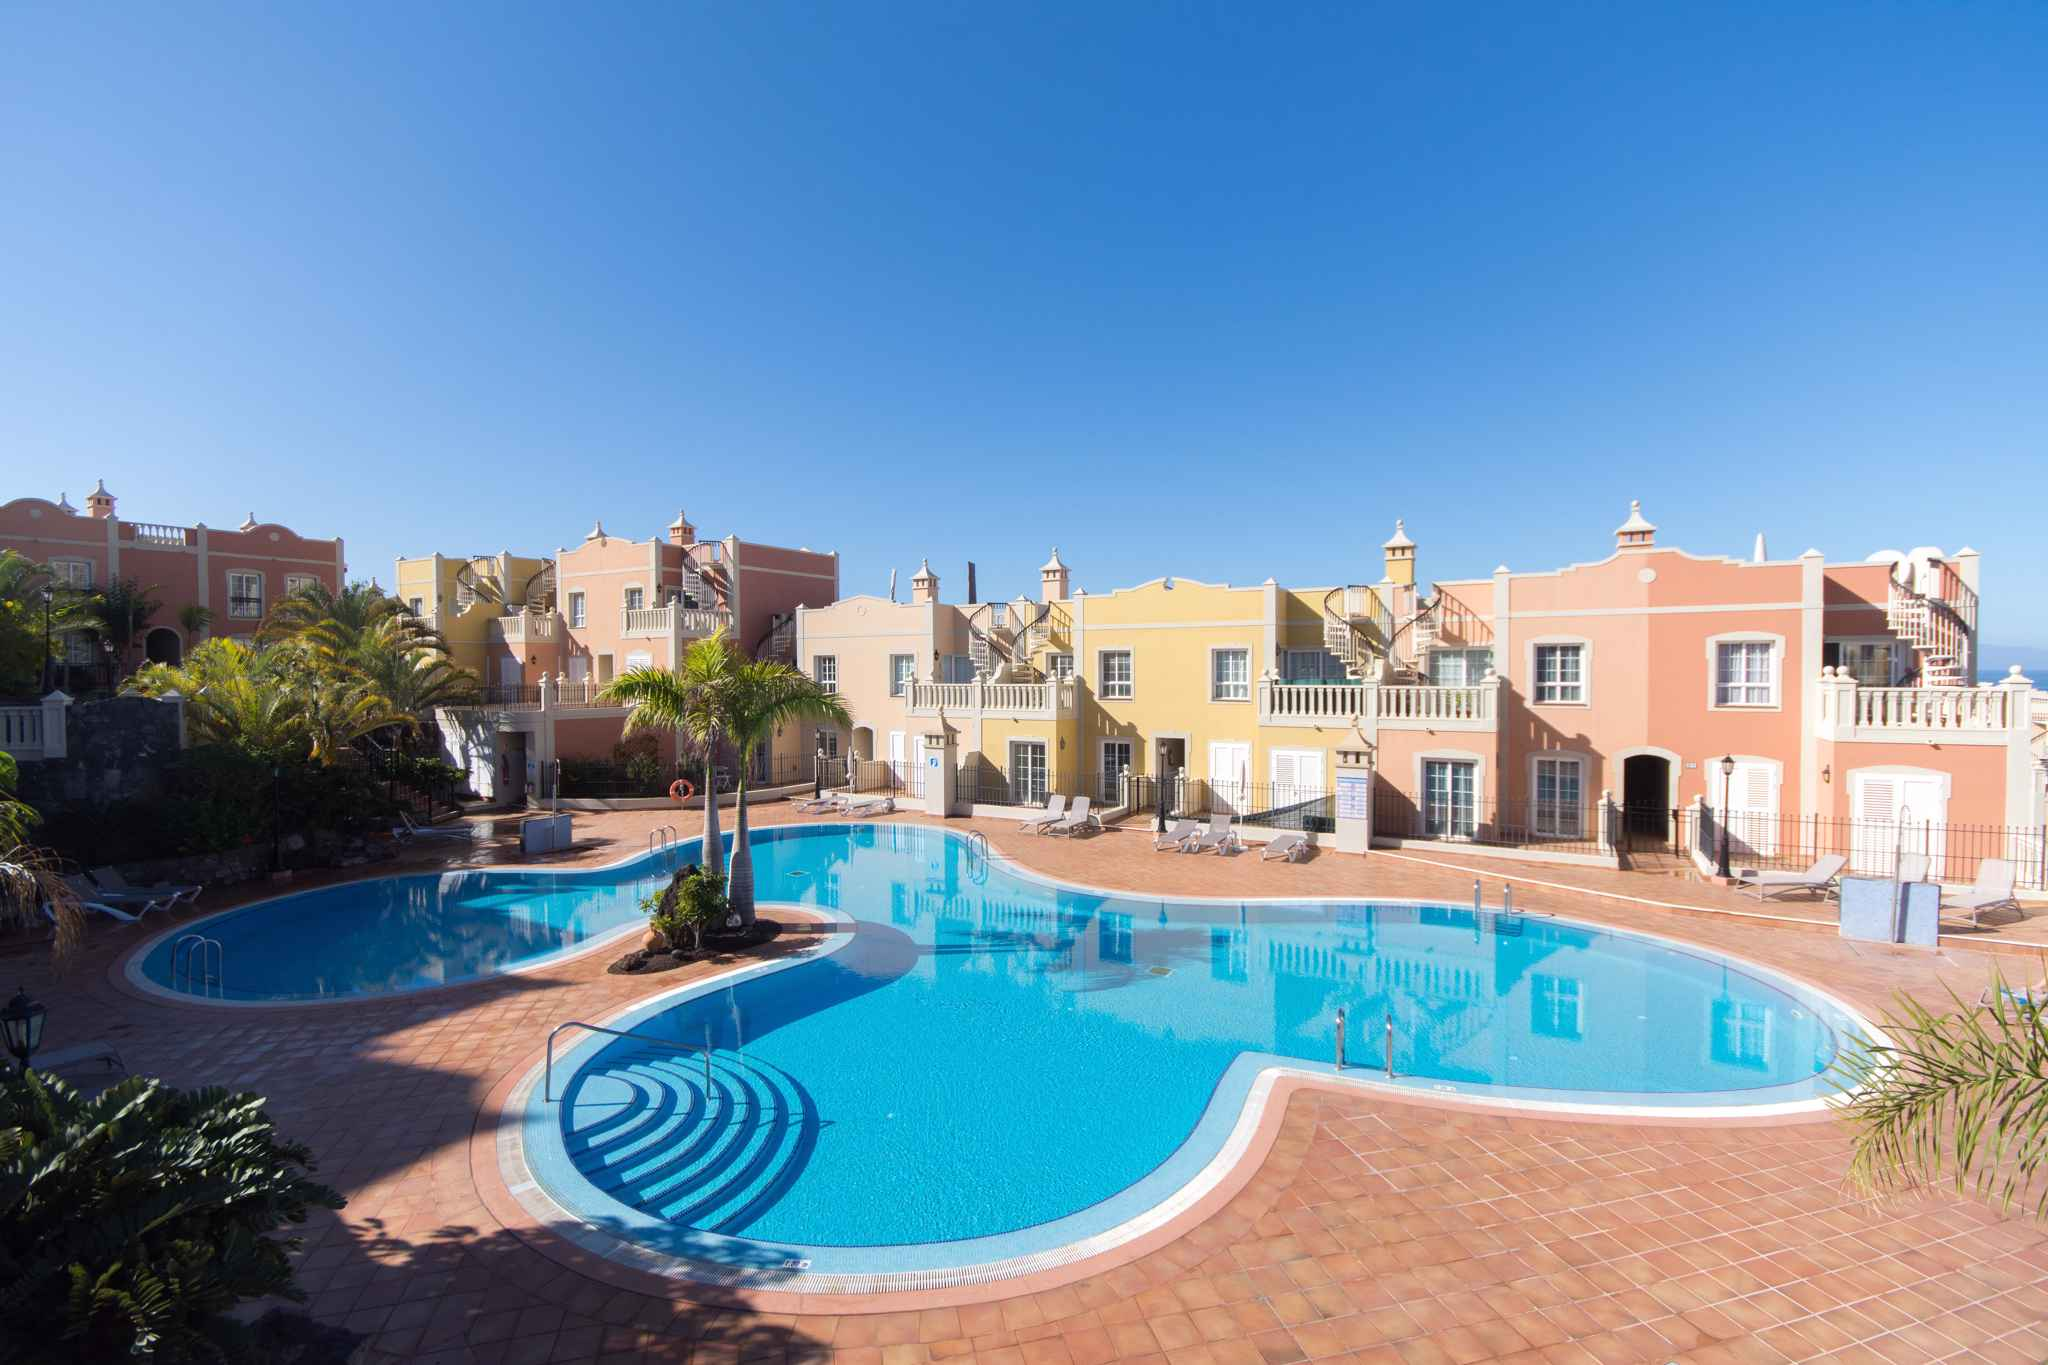 Holiday apartment mit Pool in Ferienanlage (2377552), Palm-Mar, Tenerife, Canary Islands, Spain, picture 8